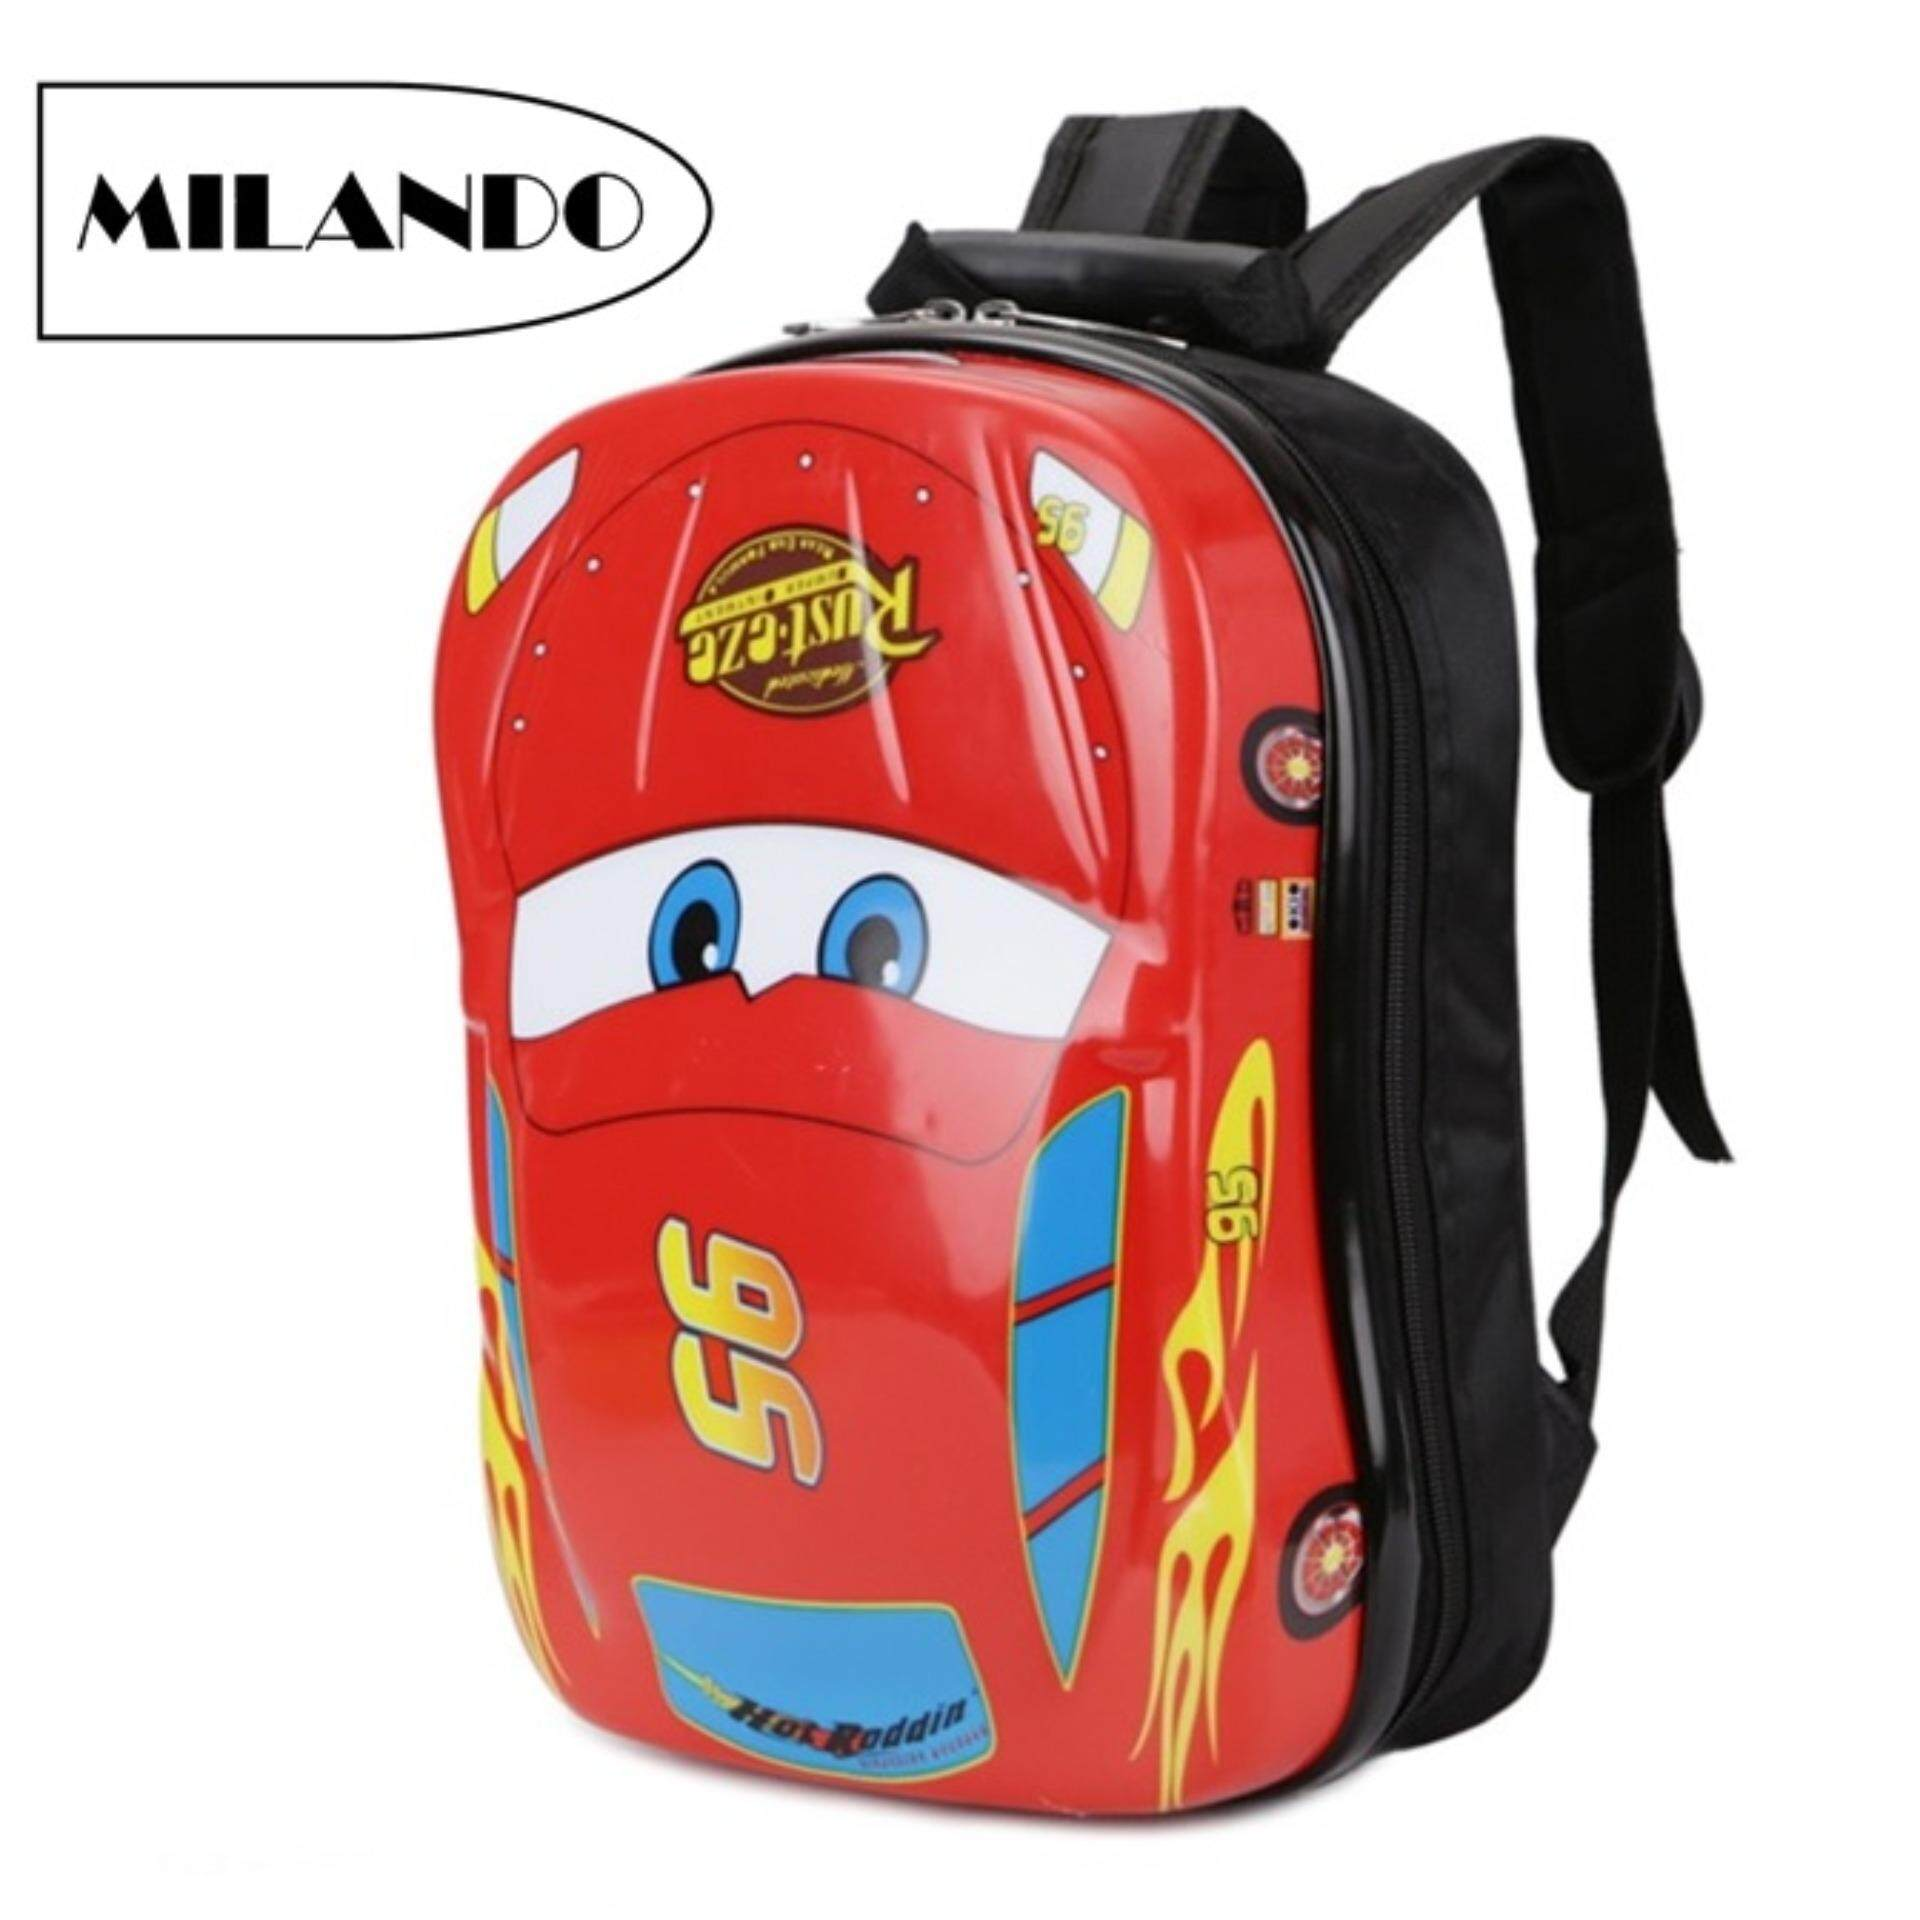 a9e88d22179f MILANDO Kid 13-inch Egg Hard Case ABS Shell Children Kids Backpack Pre School  Bag